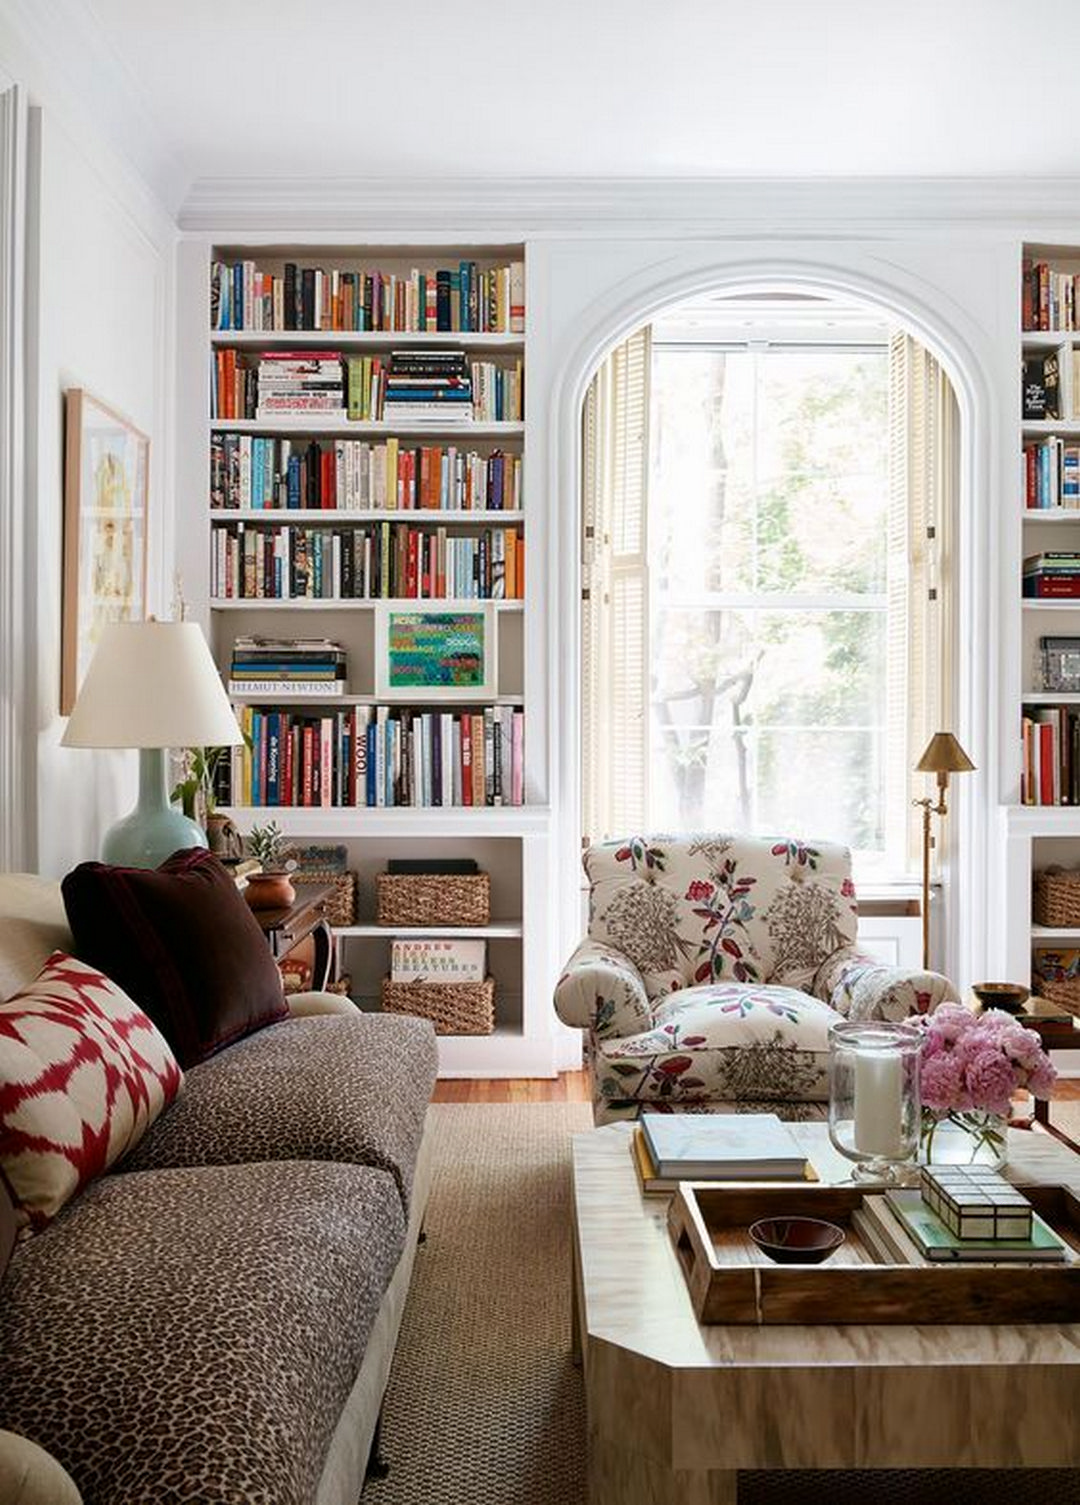 Incroyable ... Chic Pre War Apartment Via A Little Bit Of Classic, Ethnic, And Floral  Influence, With Just A Touch Of Color In This Refined, Eclectic Living Room.